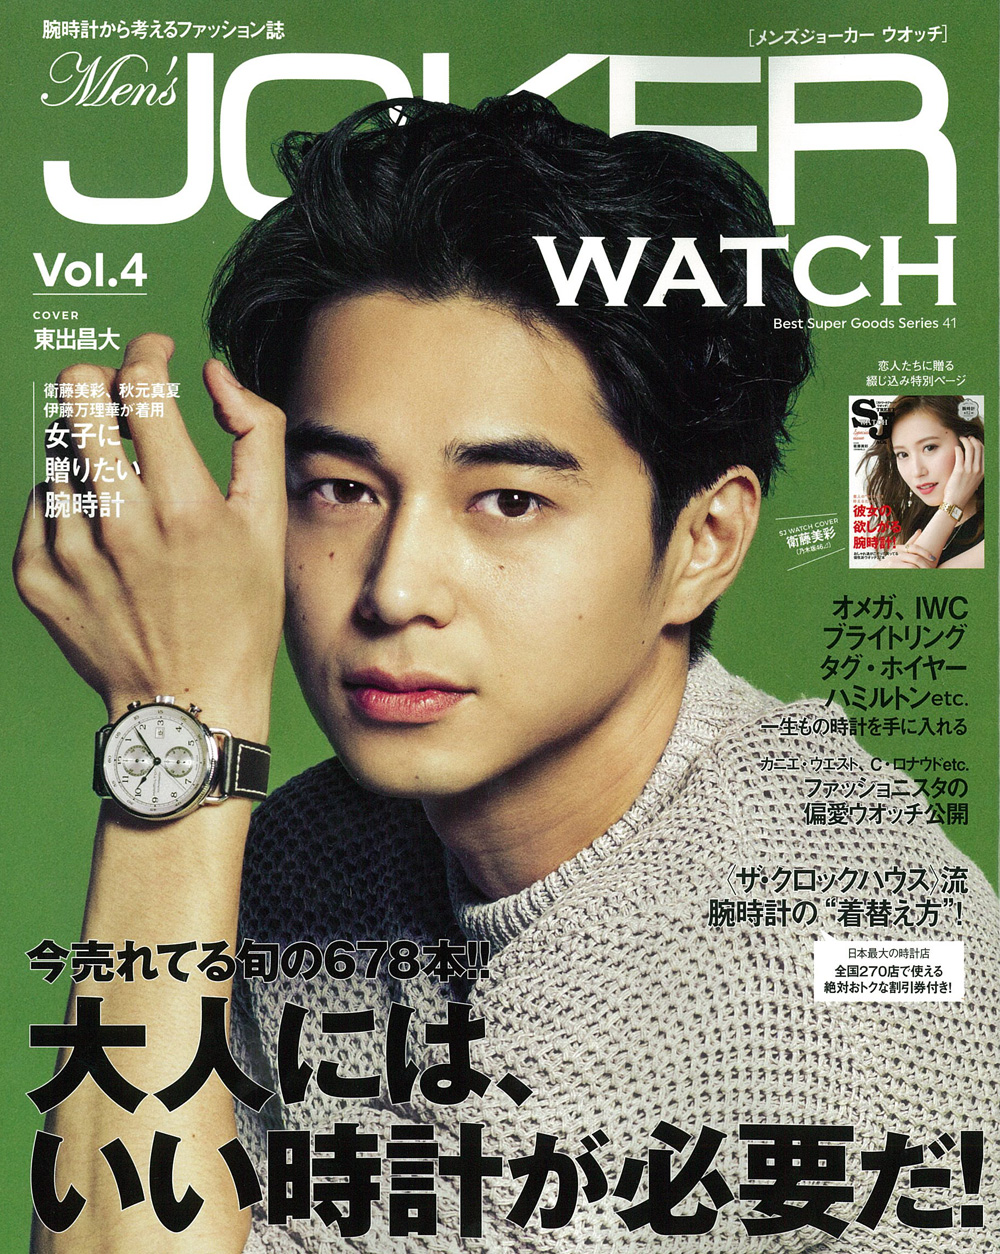 Men's JOKER watch Vol.4 掲載